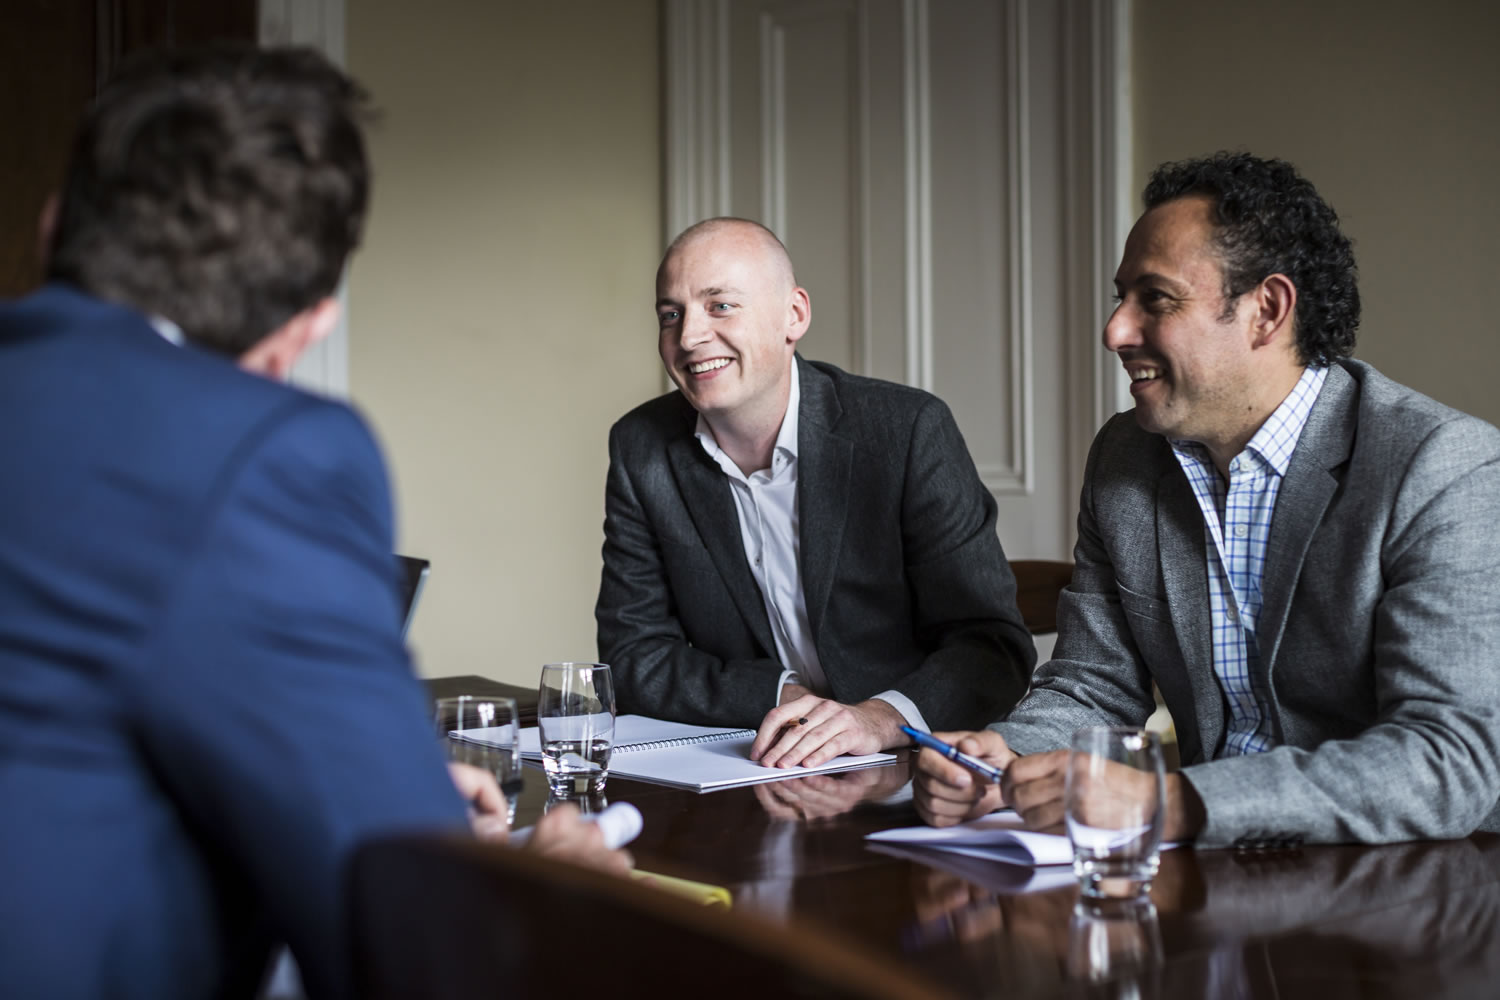 - We act for clients across a multitude of sectors and industries. We have a breadth of experience advising large international corporations to entrepreneurs and small family businesses. We provide both technical and practical advice on issues relating to all types of commercial contracts and commercial matters.Our areas of work include Confidentiality AgreementsOutsourcing and technologyProcurement and delivery of IT systems and servicesSoftware development and distribution arrangementsDispute resolutionJoint ventures and other strategic alliancesData protection, privacy principles and securityproject finance and other funding arrangementsintellectual property management, enforcement and commercialisationTrading agreementsBuying and SellingAgency and distributionFranchise agreementsStandard terms & conditionsFreight and Transport